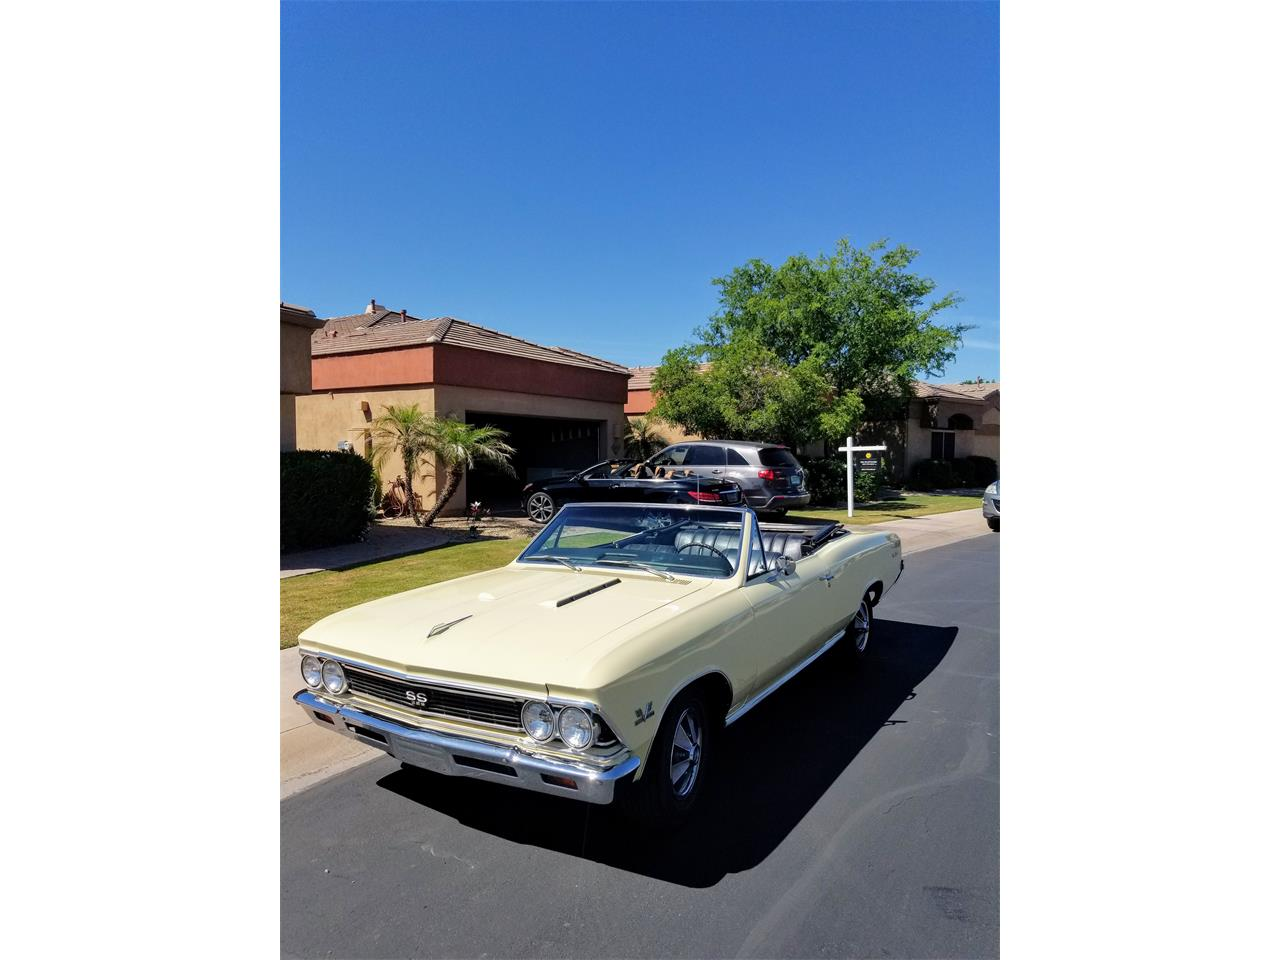 Large Picture of 1966 Chevrolet Chevelle SS located in Arizona - $47,600.00 - Q4KO